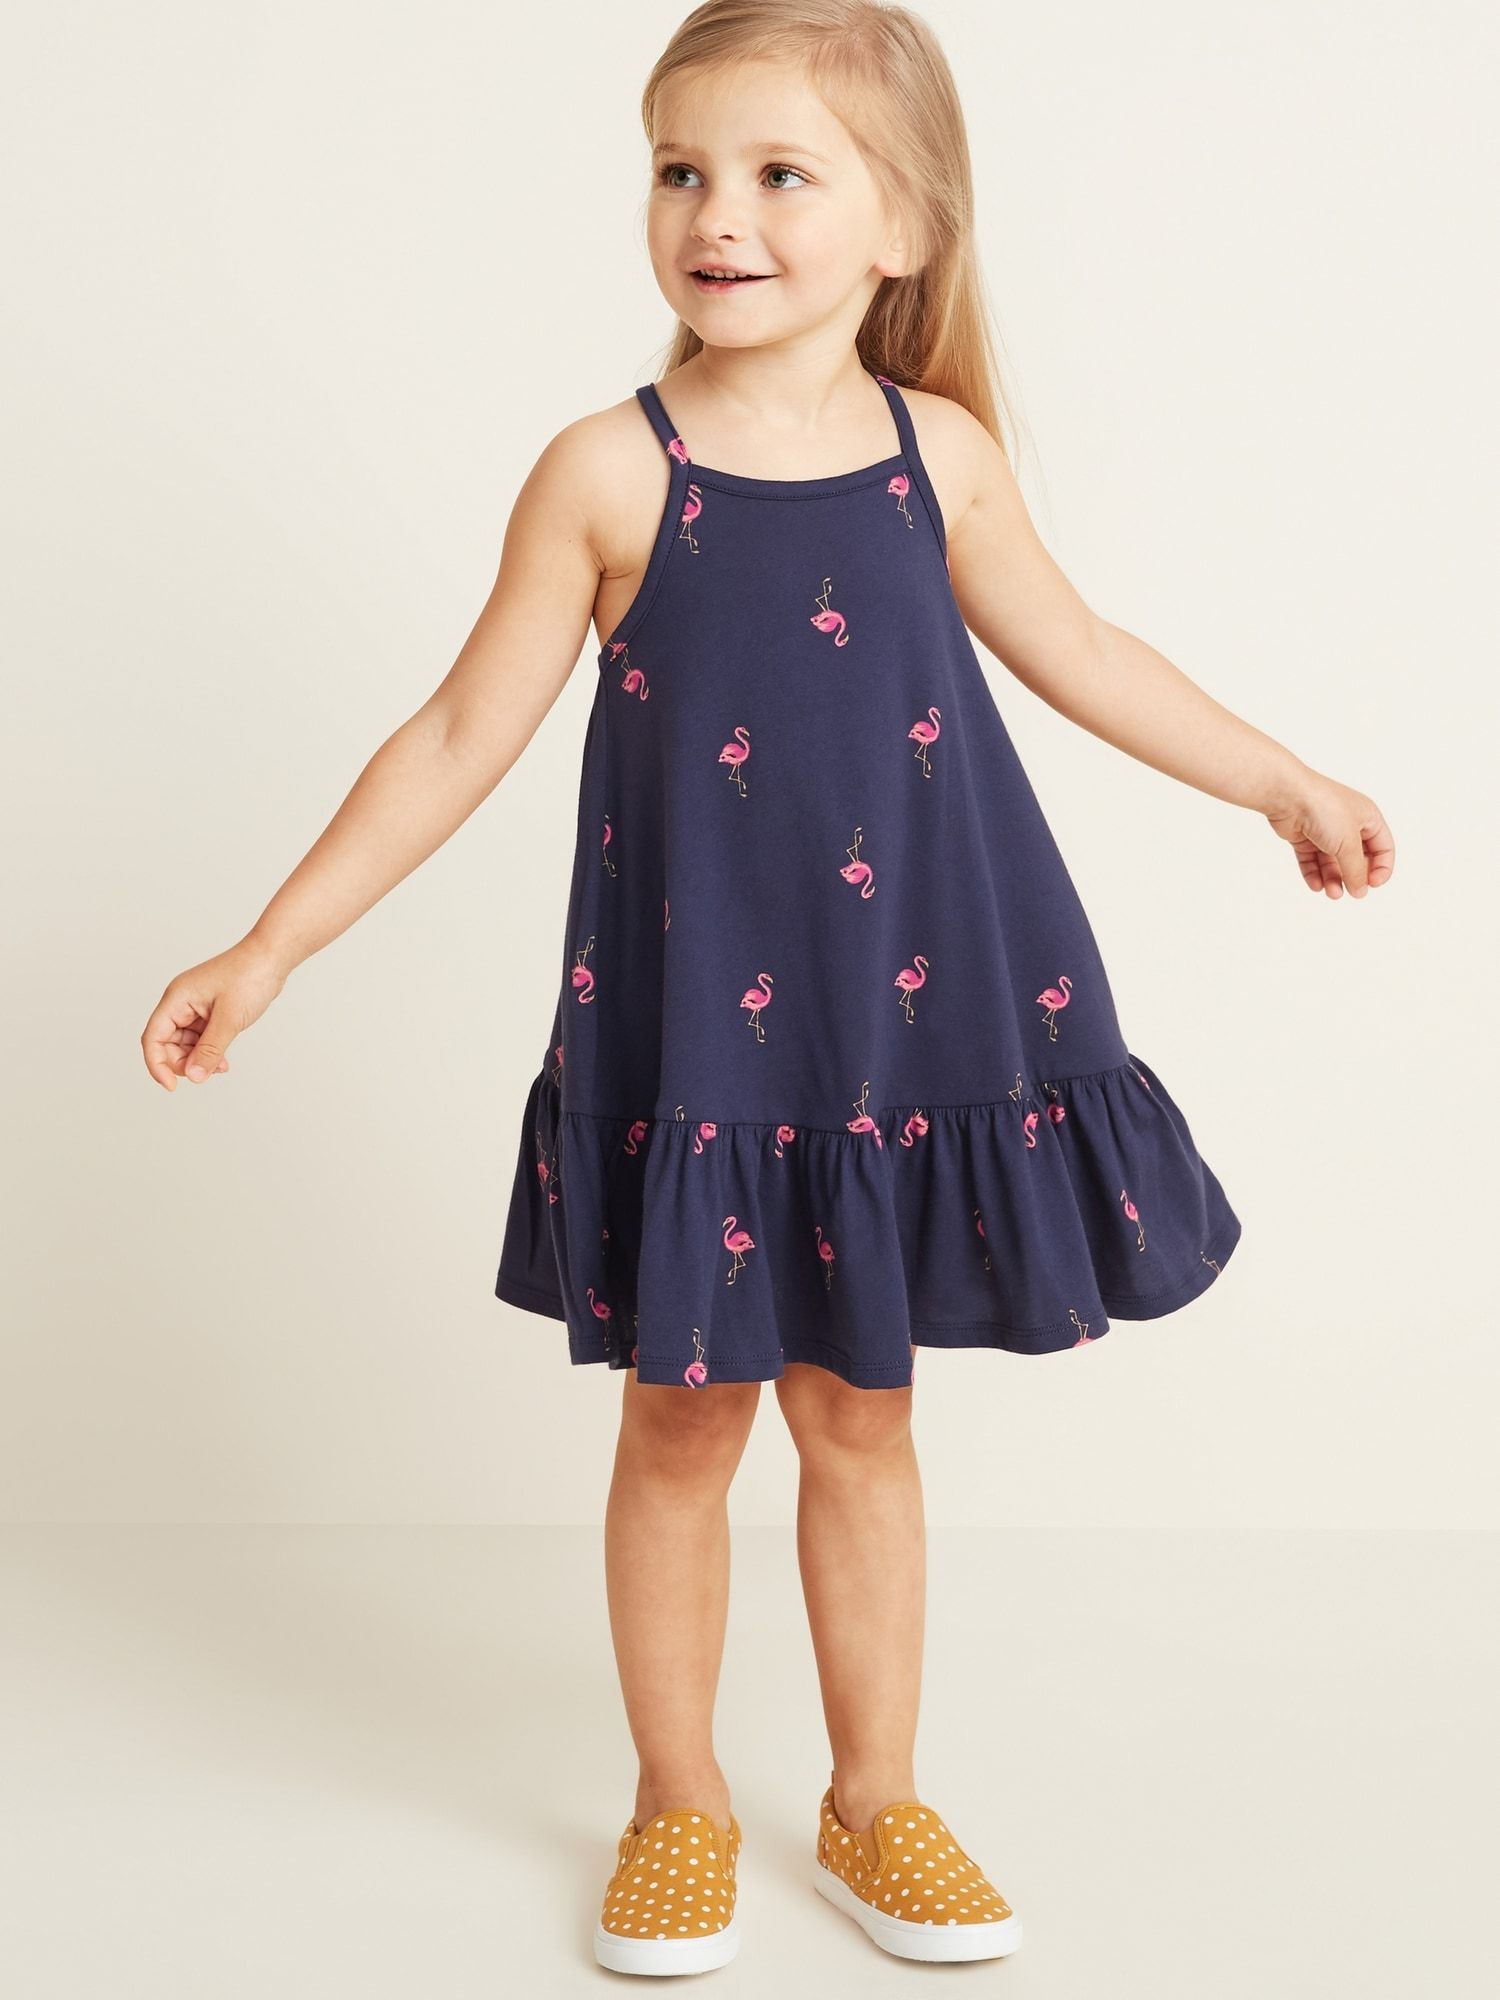 063fc7b5a5 Sleeveless Tiered Swing Dress for Toddler Girls | tiny humans ...